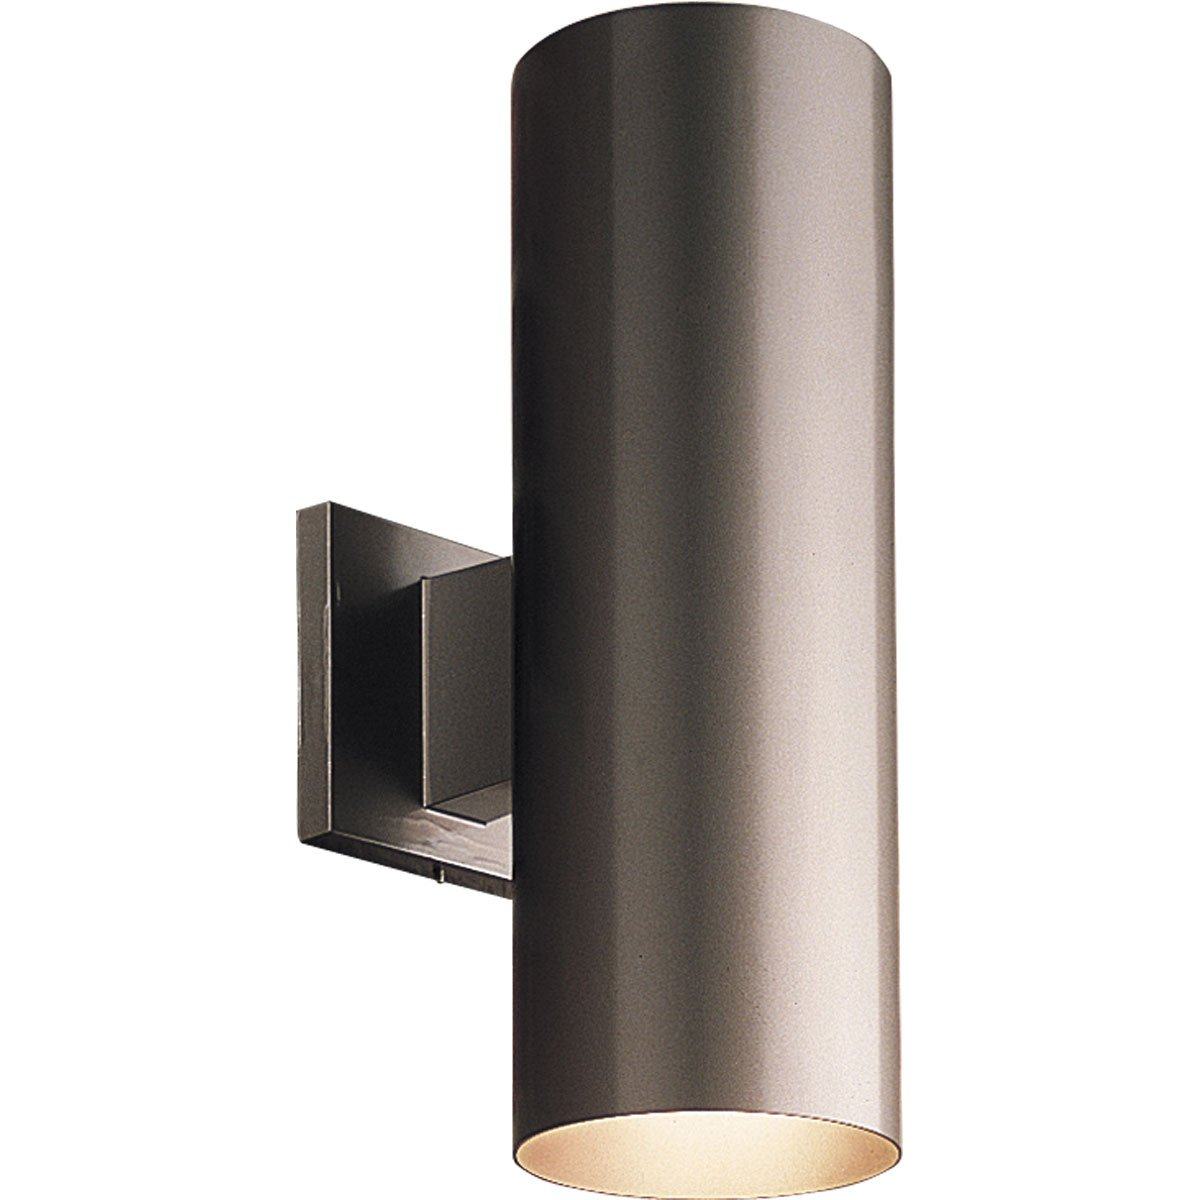 "Progress Lighting P5675-20 Two-Light Wall Cylinder 5"" Width x 14"" Height Antique Bronze"